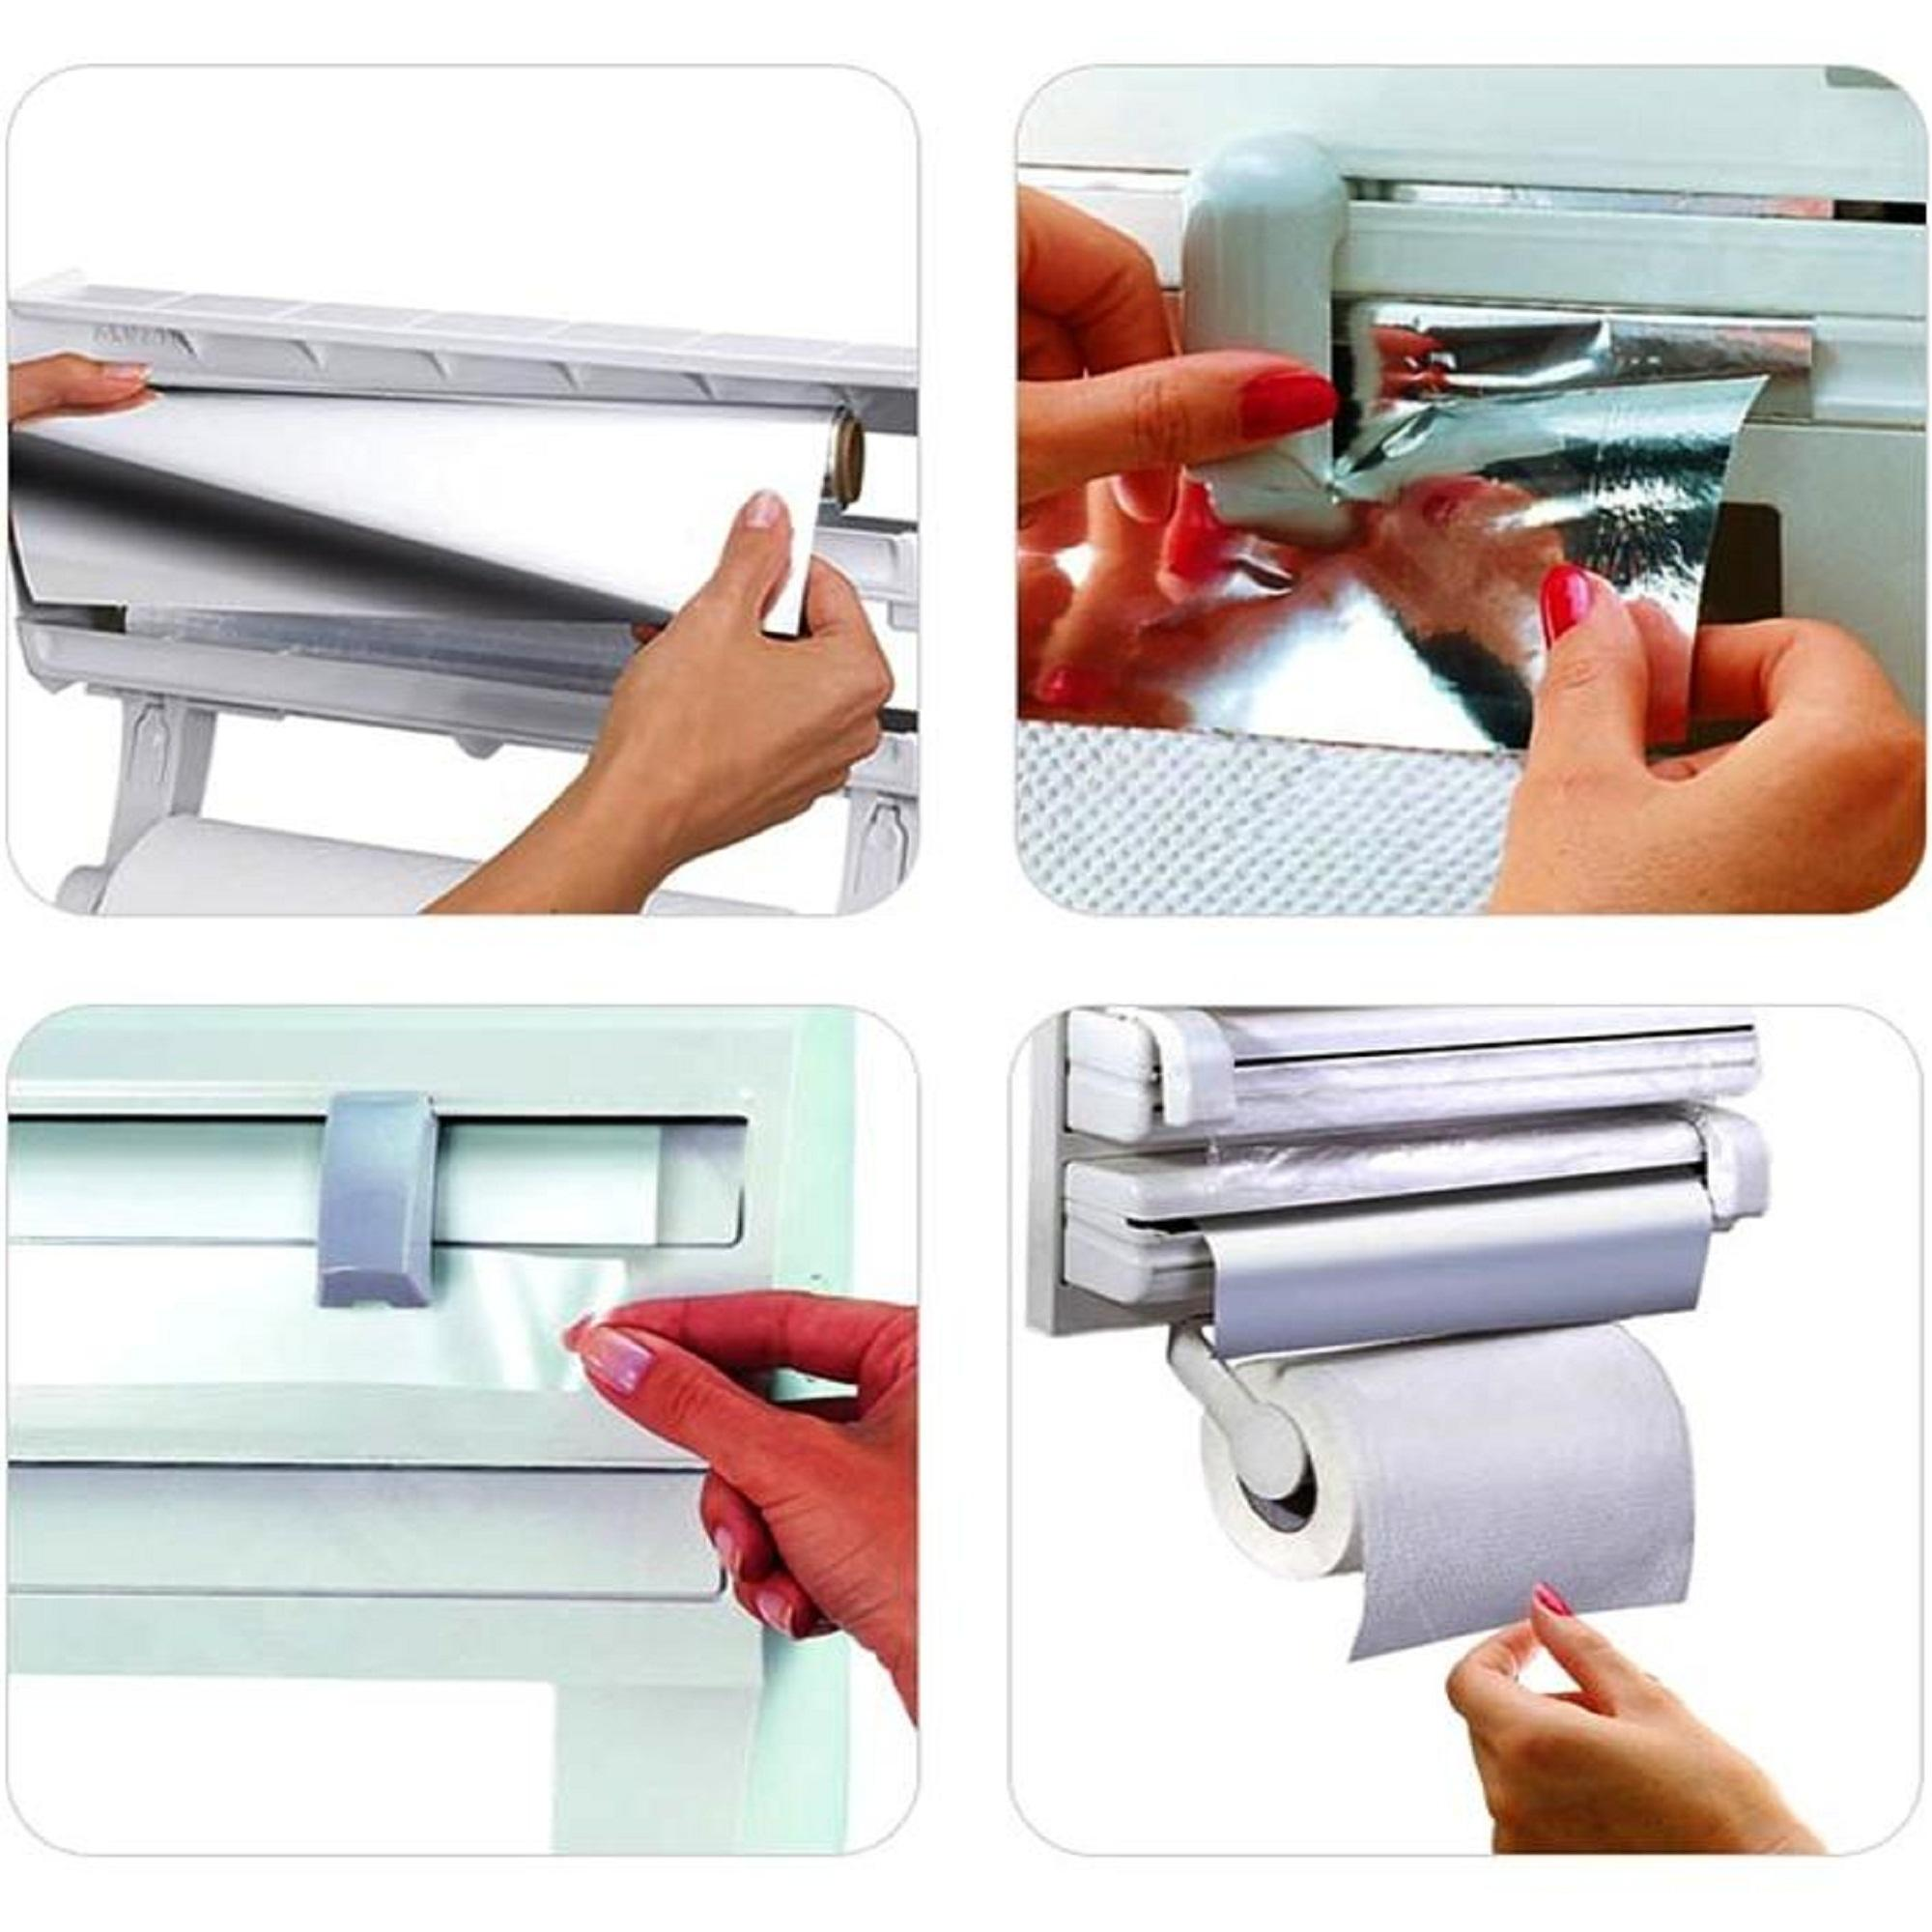 ÃðÃÃøýúø Ã¿þ ÷ðÃÂ¿ÃþÃà Kitchen Roll Triple Paper Dispenser